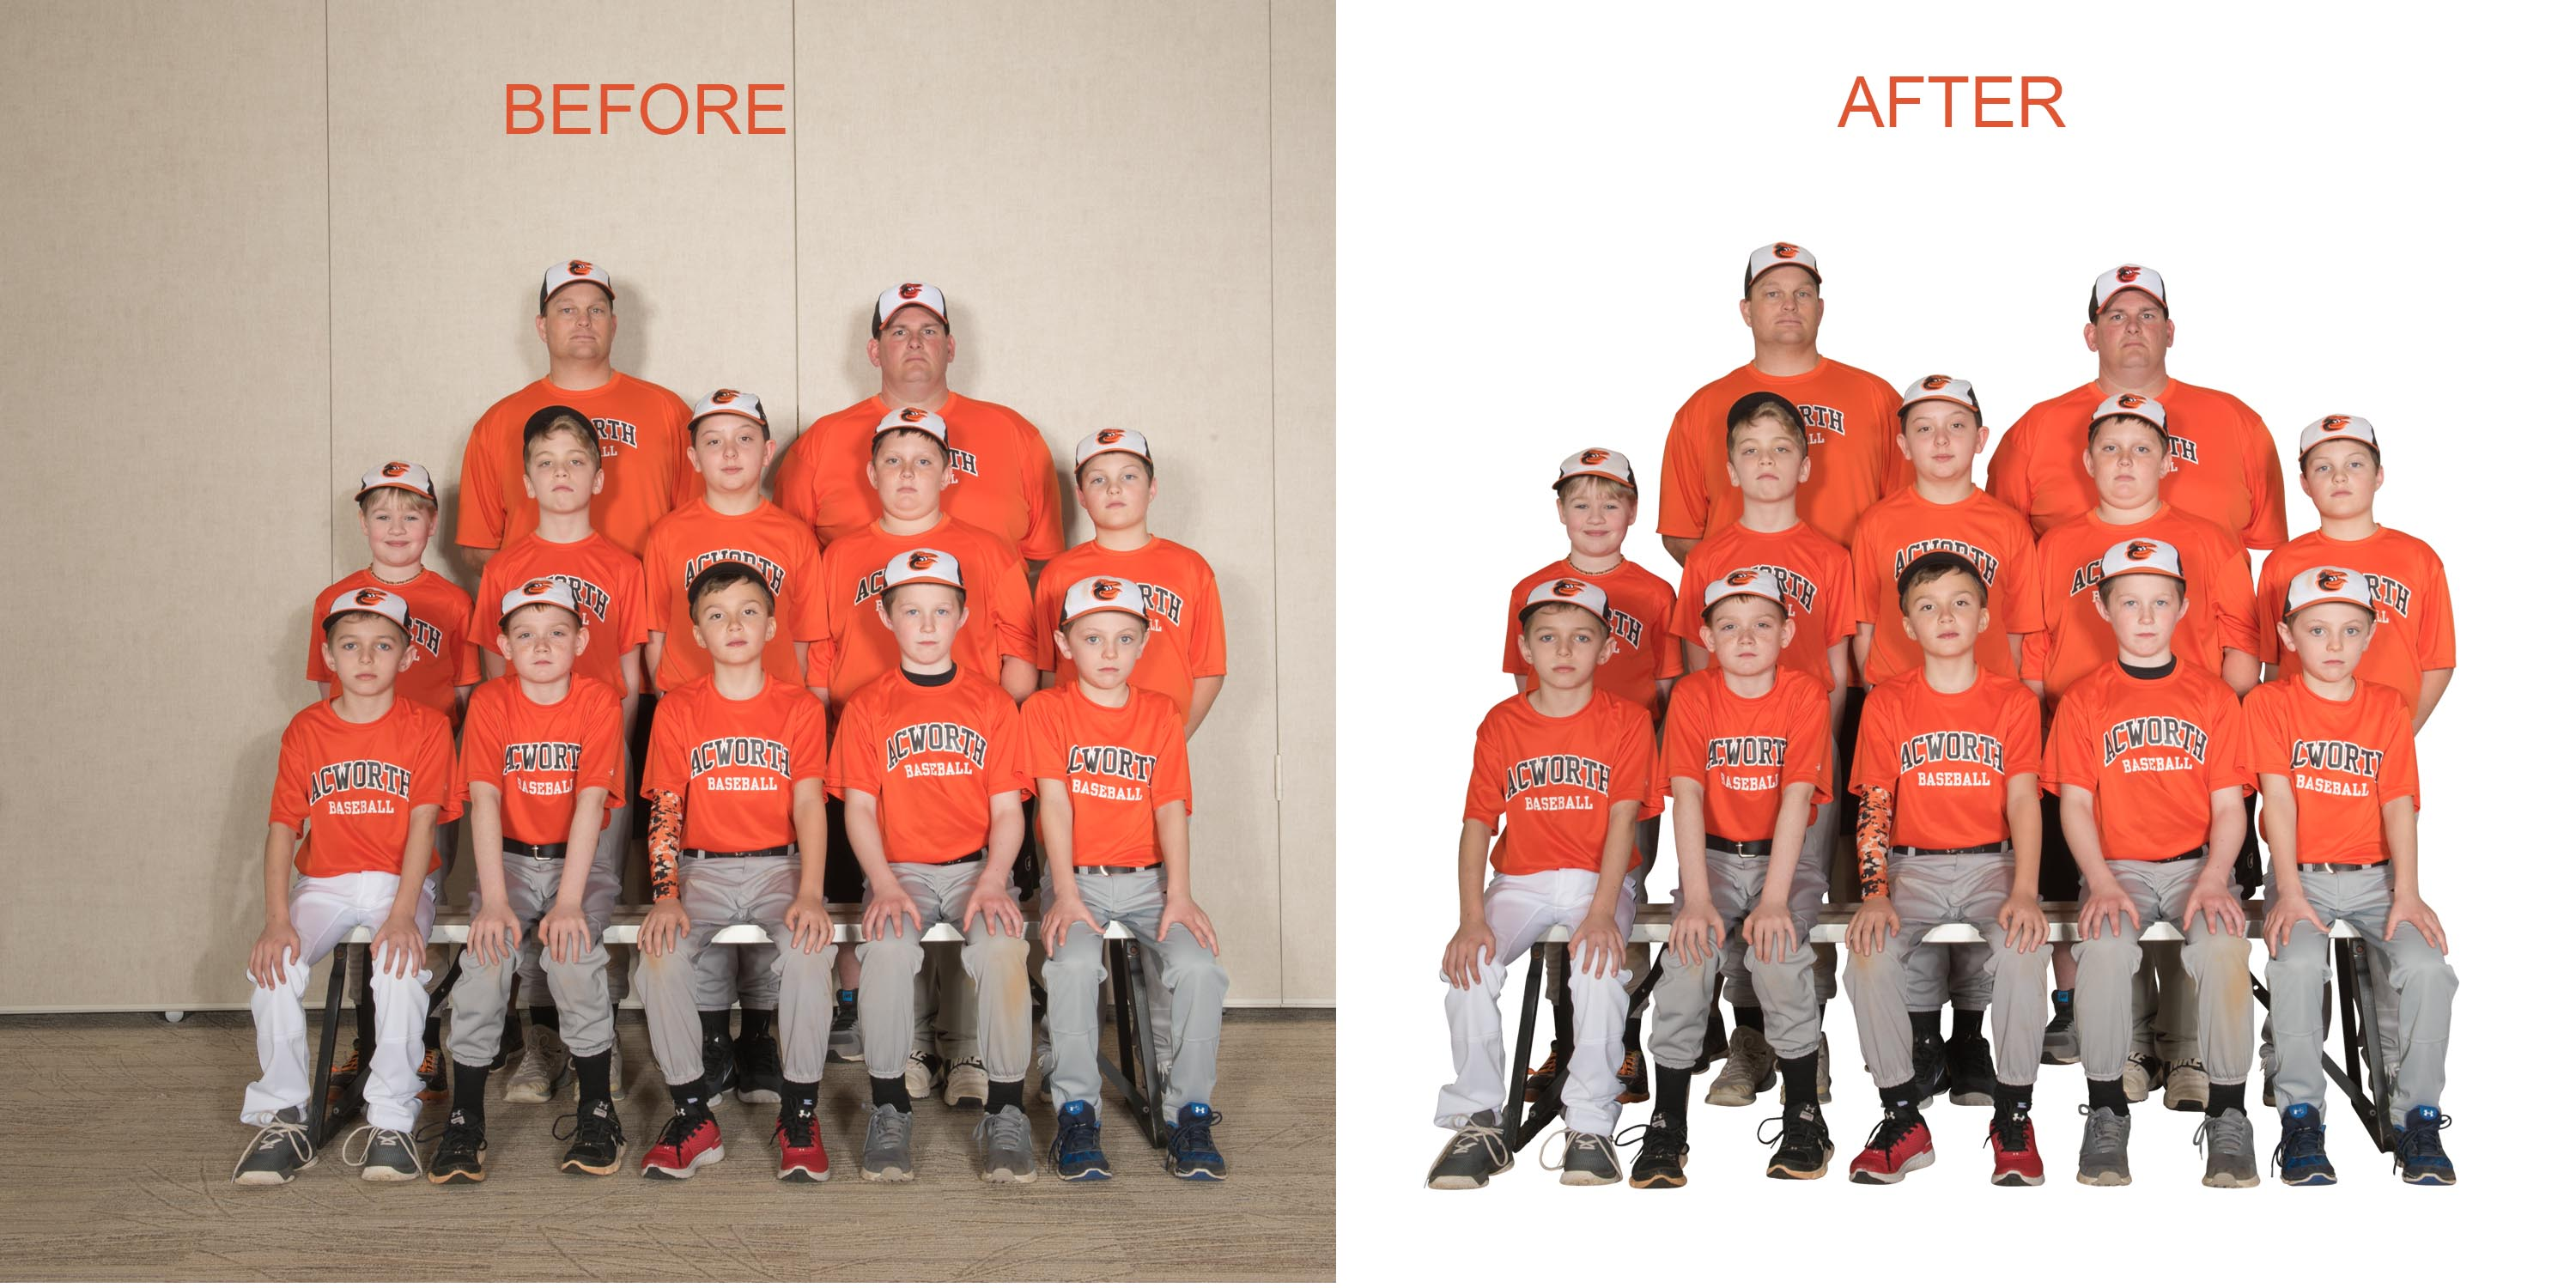 Adobe Photoshop Clipping Path Background Remove Service for Per Image